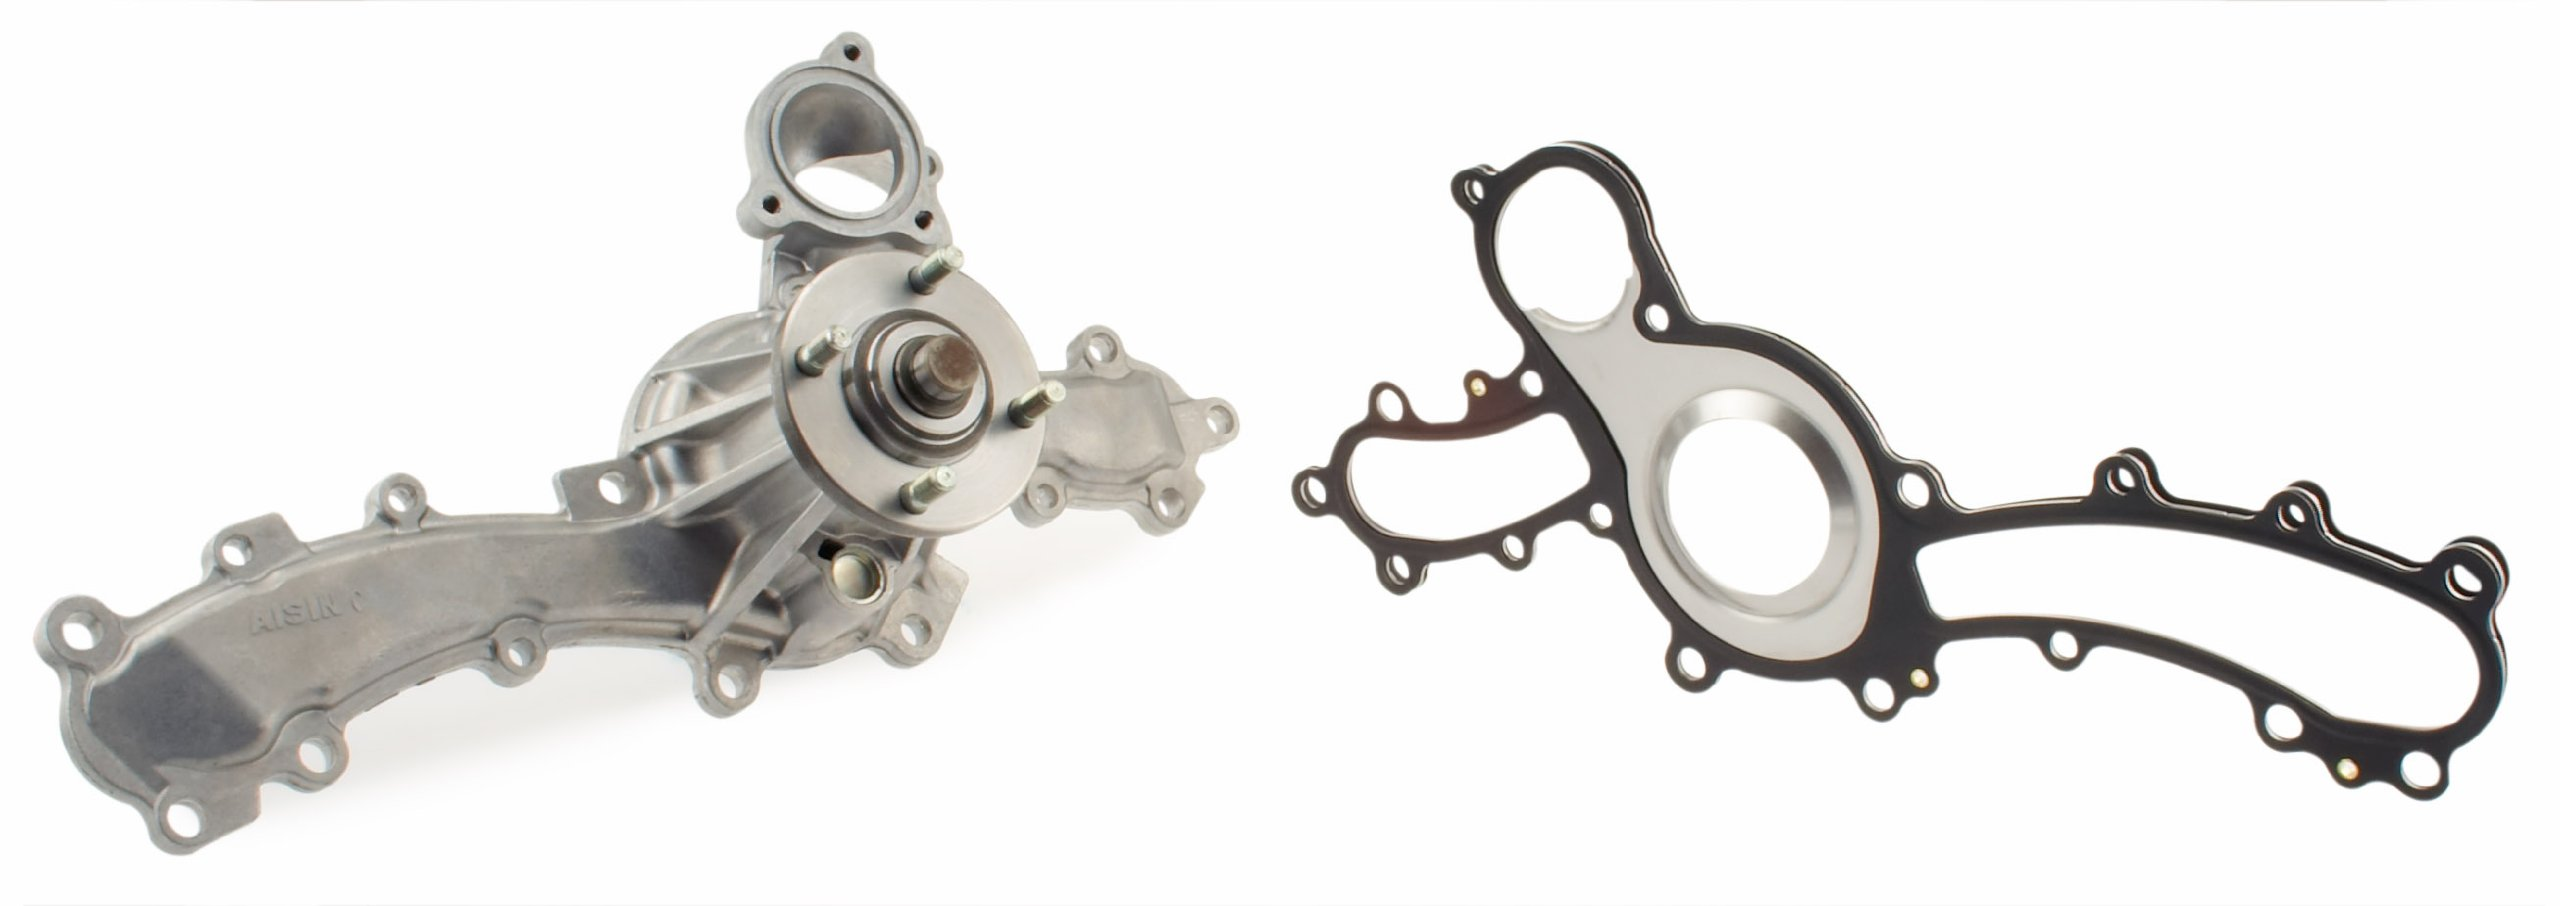 Aisin WPT-802 Engine Water Pump by Aisin